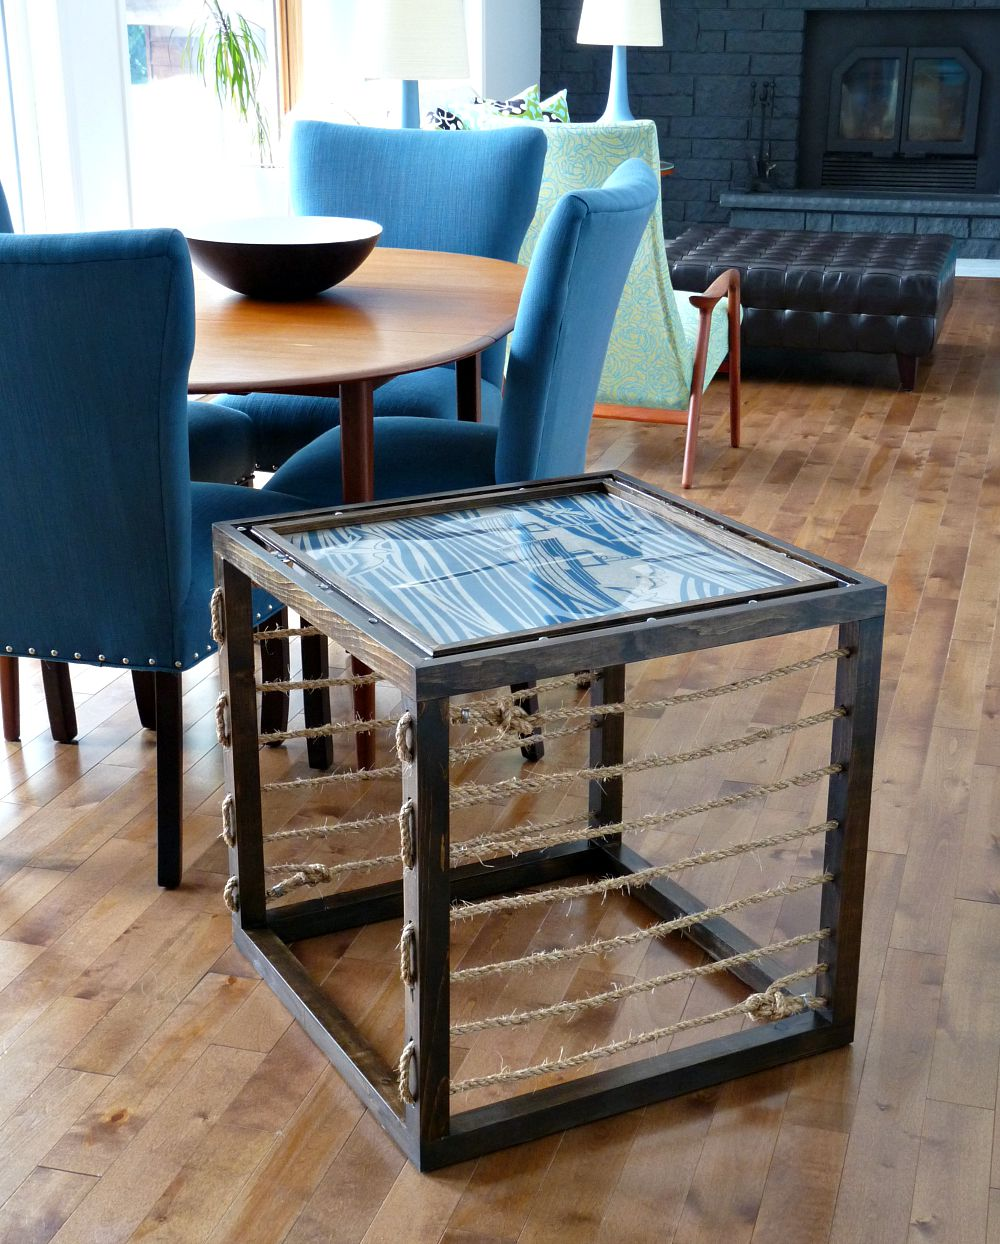 diy nautical accent table dans lakehouse rustoleum after ideas loveyourwood contest half round entry black distressed coffee floor separator scandinavian replica furniture wood